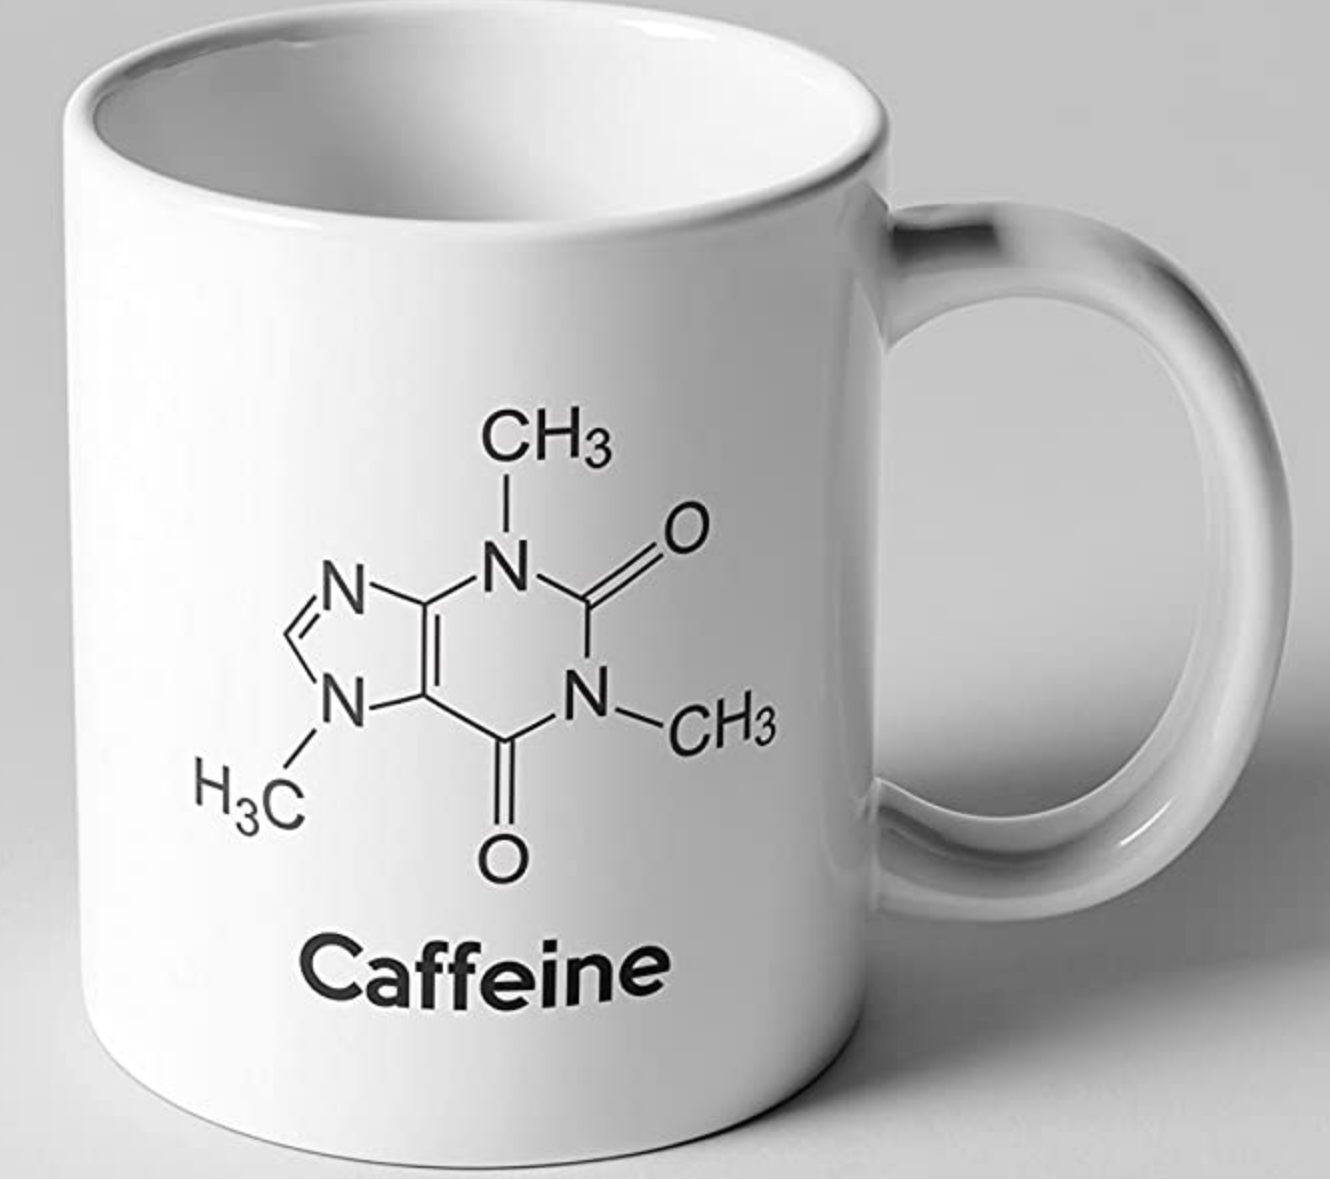 What are the typical caffeine levels found in tea?